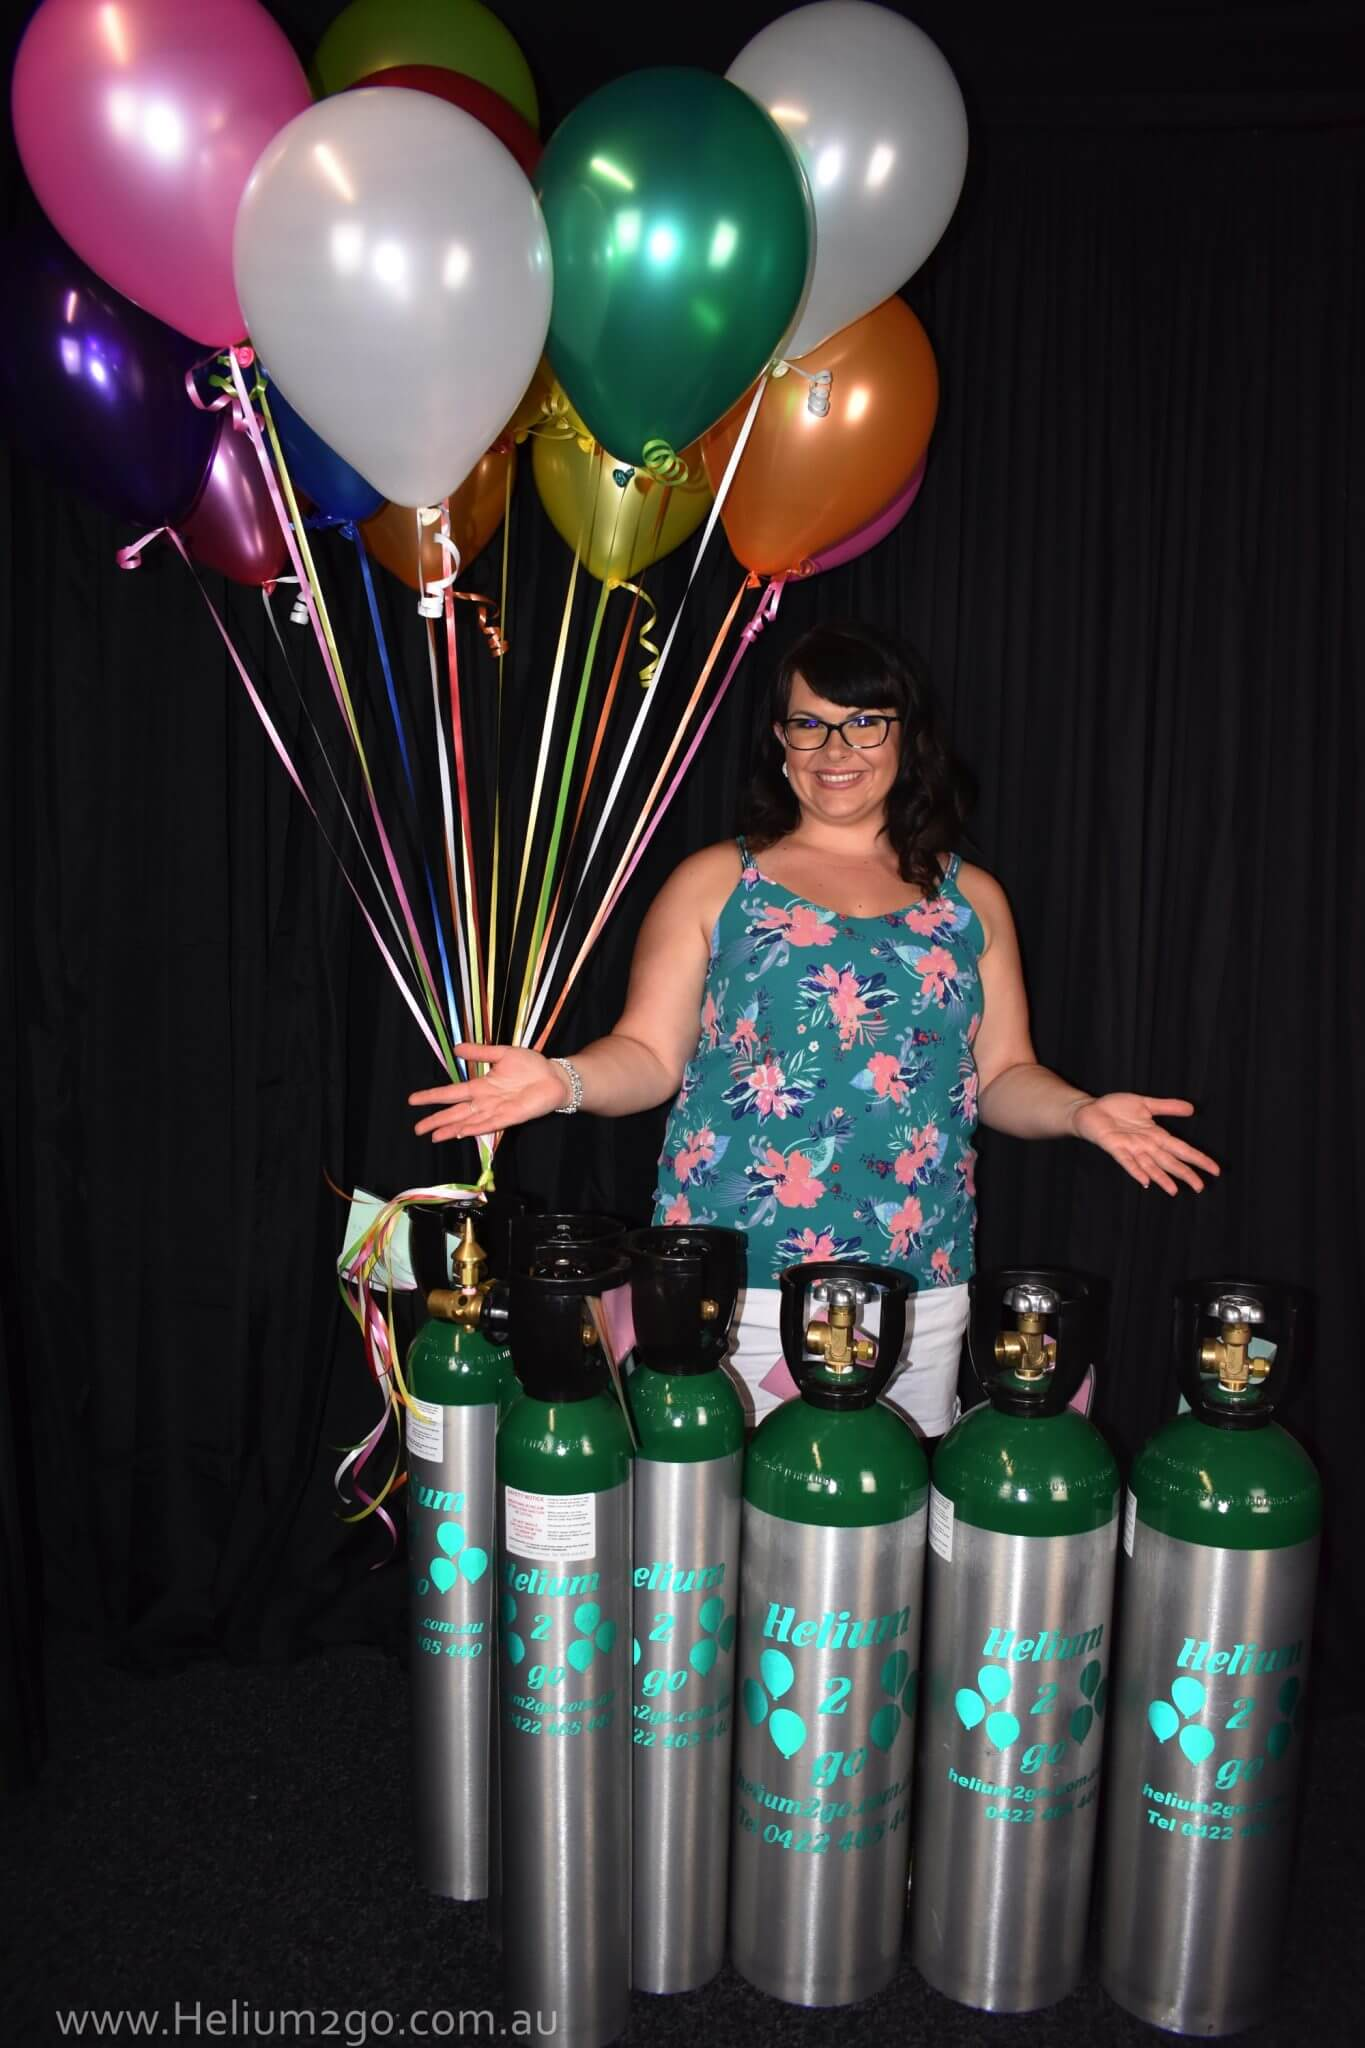 Helium Balloon Gas Cylinder Hire to inflate 200 balloons